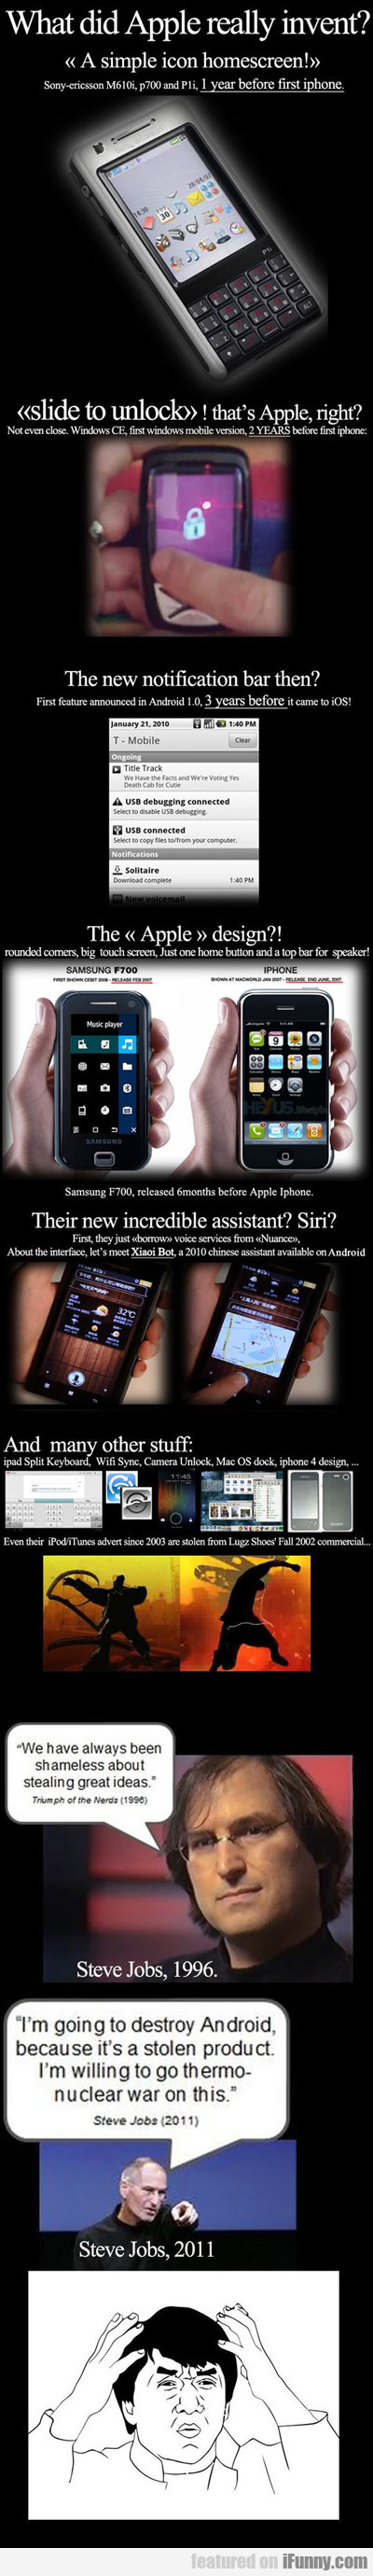 What Did Apple Really Invent...